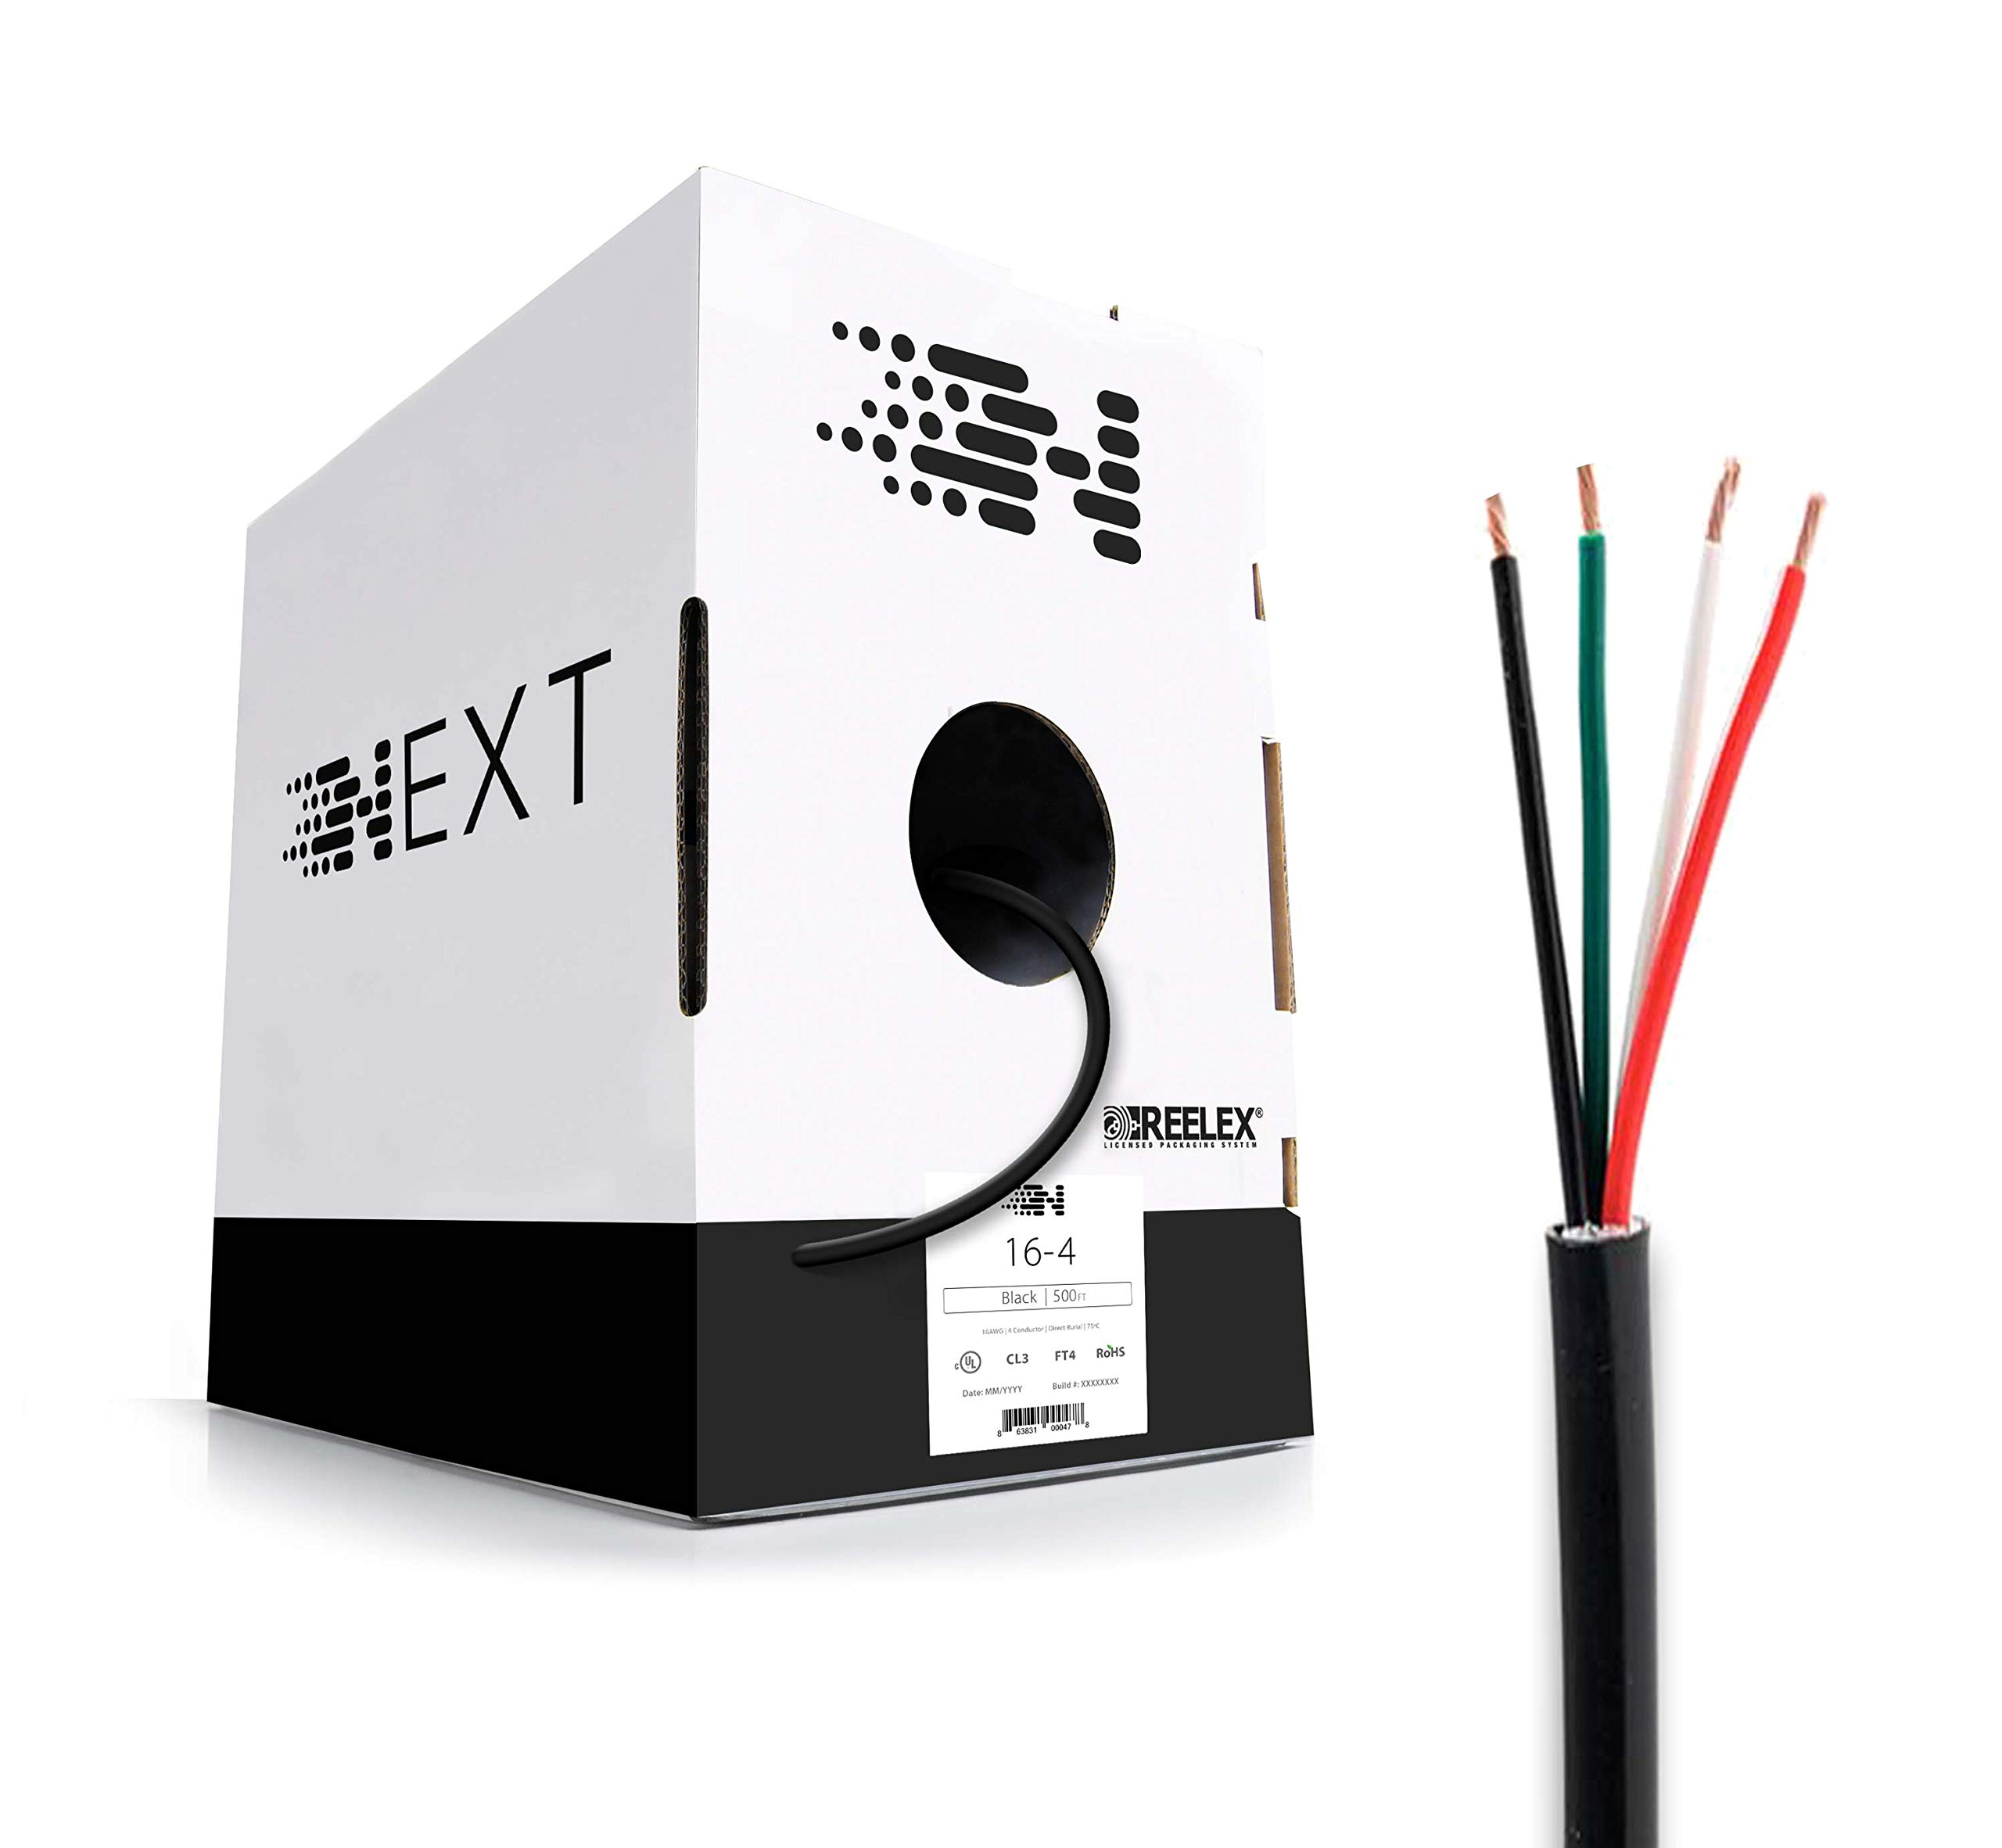 Next 16-4 Speaker Wire - in Wall & In Ground (Direct Burial) Rated - No CCA (Solid/Full Copper) - 500ft Bulk Wire Pull Box - CL3 Rated - Black